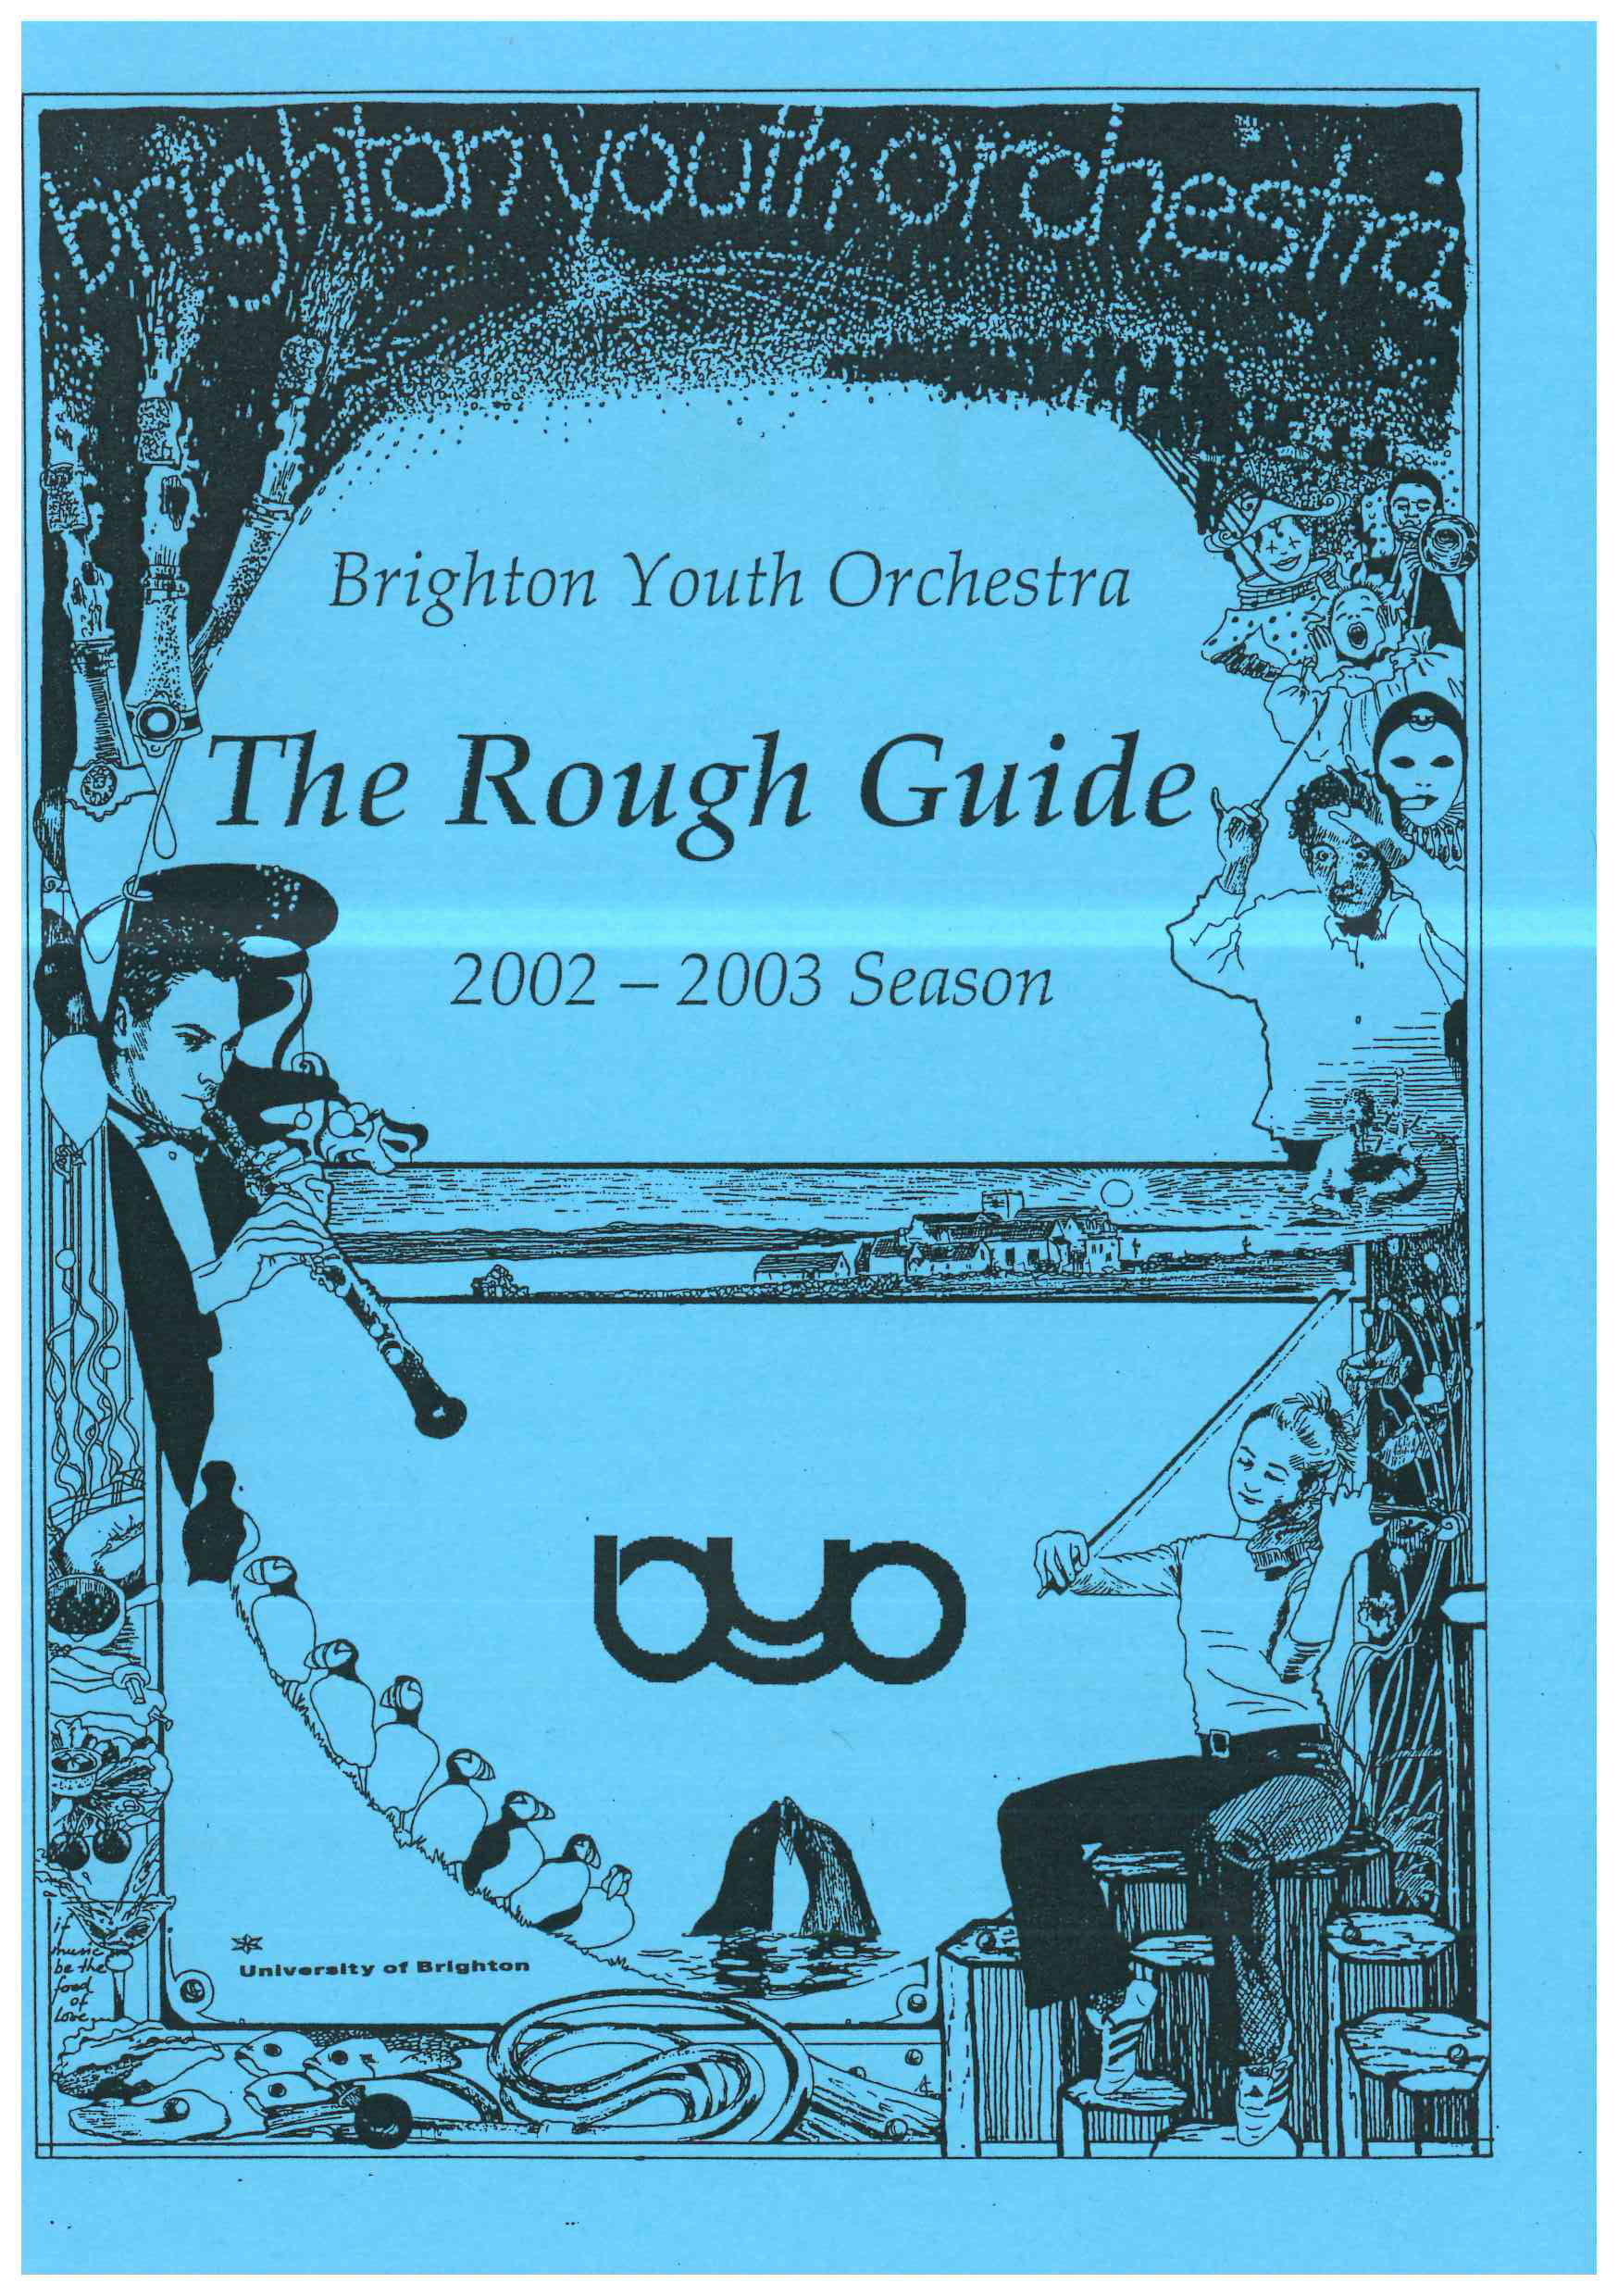 00349-Rough Guide, Season 2002-2003.jpg